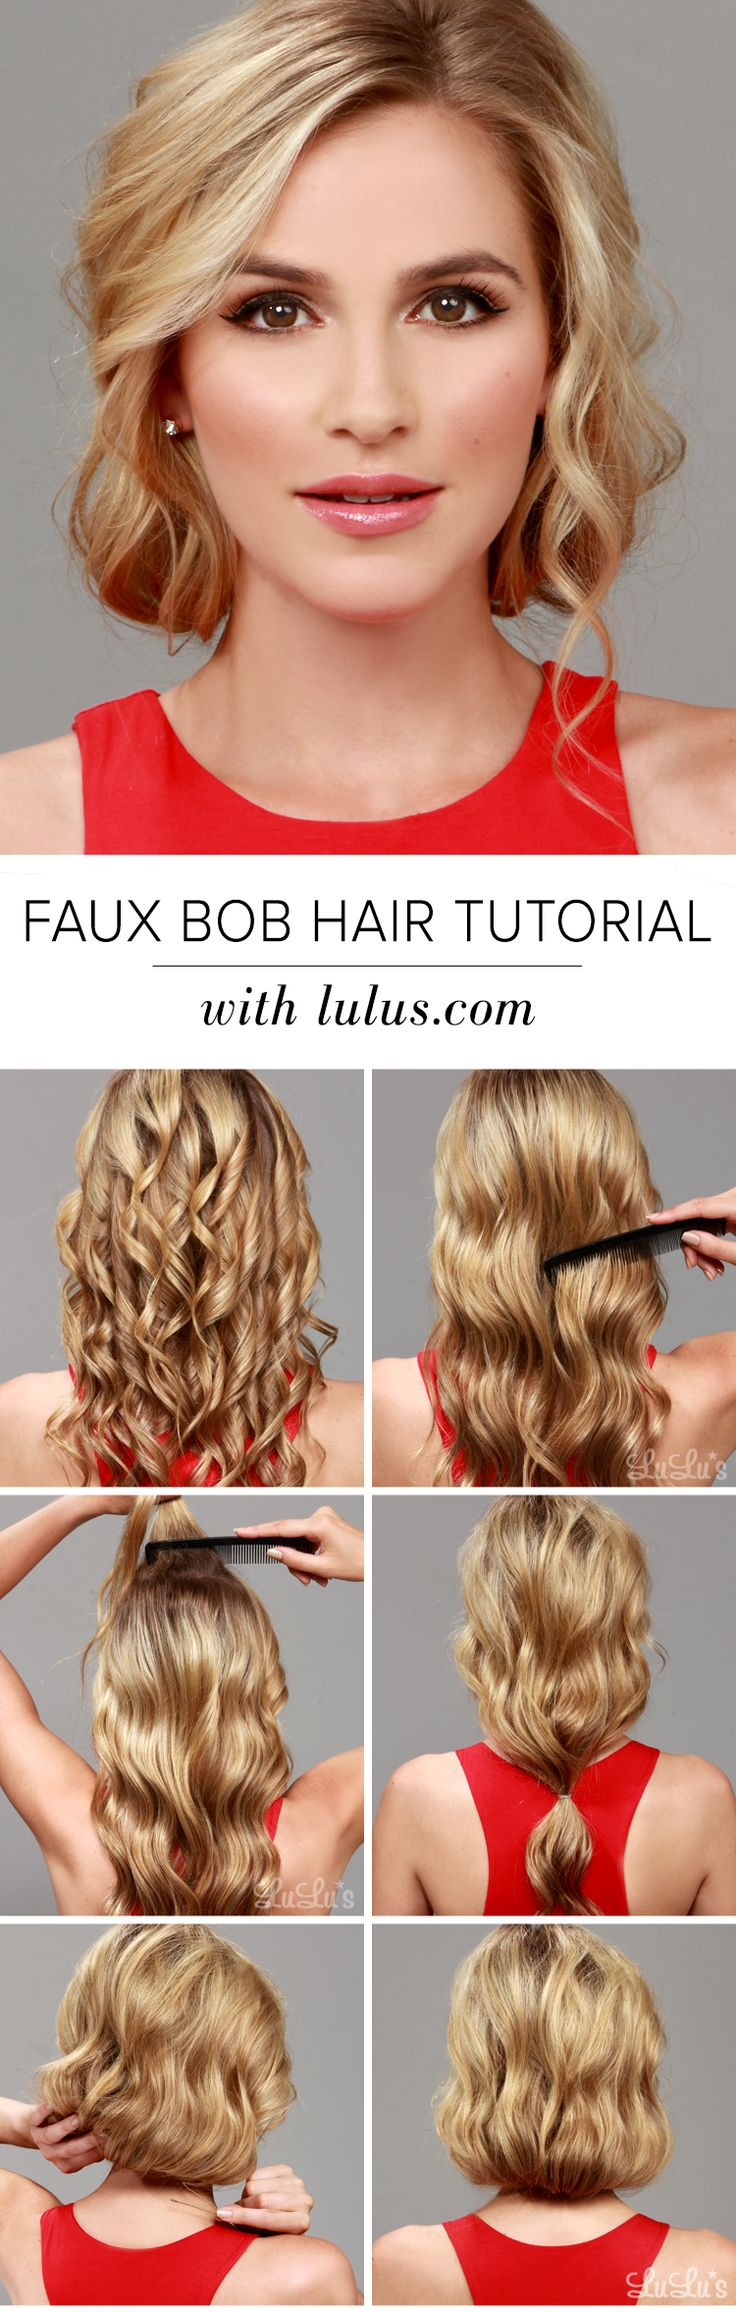 Are you loving the bob trend, but hate the thought of parting with your long tresses? Give our Faux Bob Hair Tutorial a try and